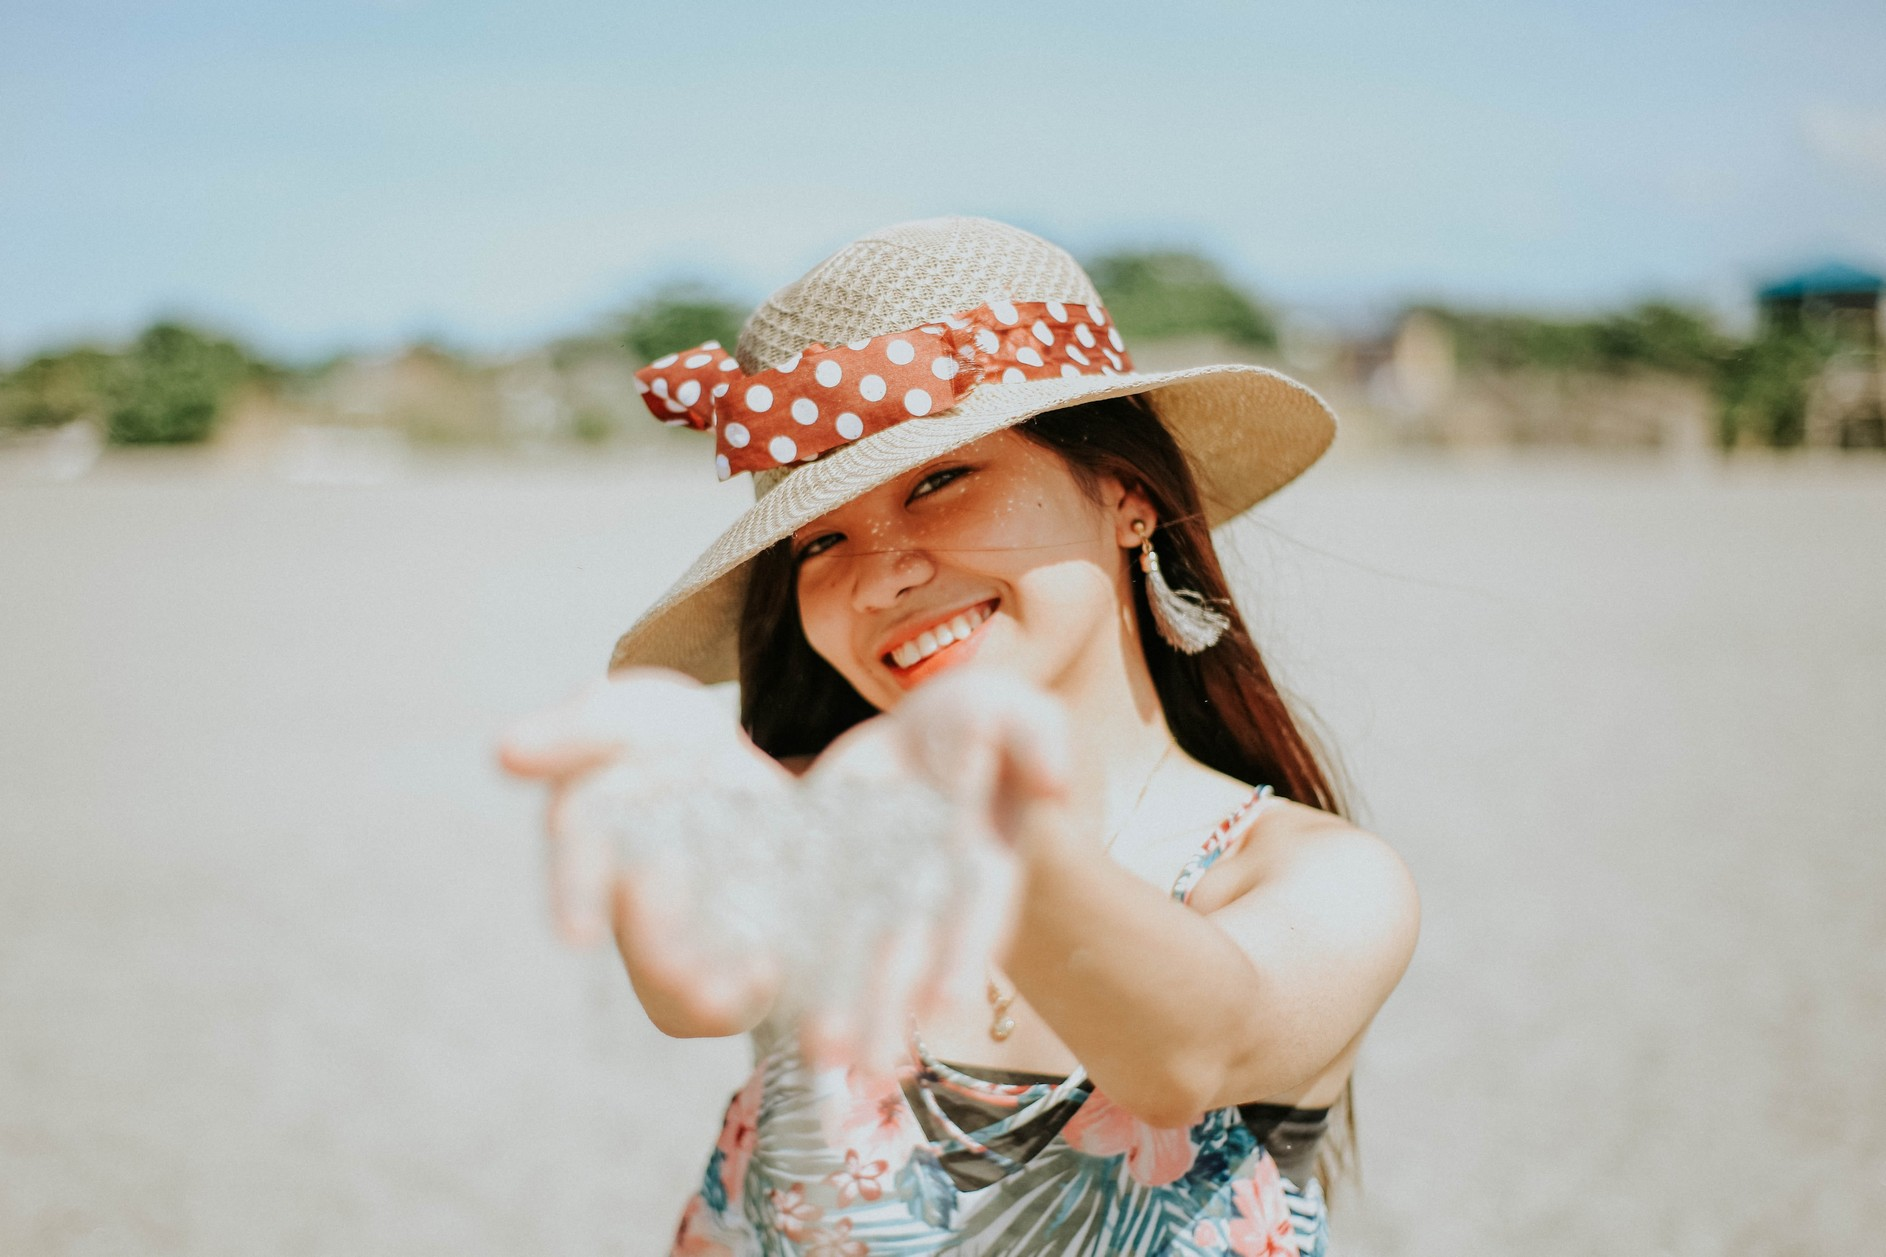 woman in a white and blue floral dress wearing a brown straw hat, pouring sand towards the camera whilst smiling.